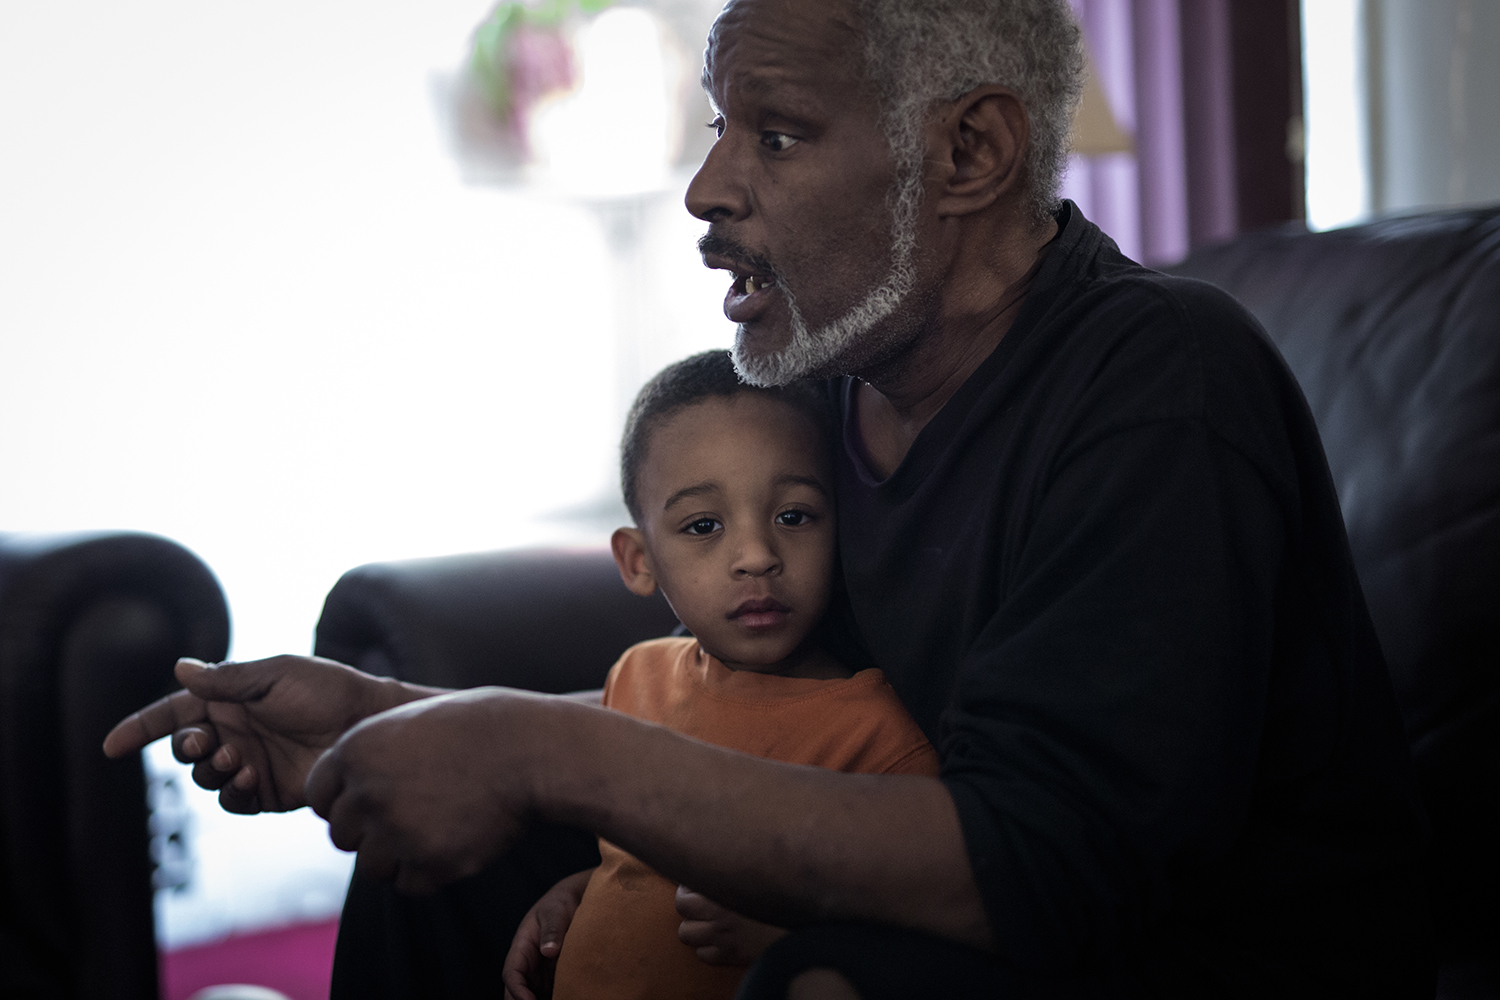 Flint, MI - Feb. 11, 2016: Ja'Son Keith, 2, stands in the arms of his grandfather, Darryl Washington, as he talks about the water crisis in their home on Thursday, Feb. 11, 2016 in Flint, MI.Tim Galloway for the Wall Street Journal